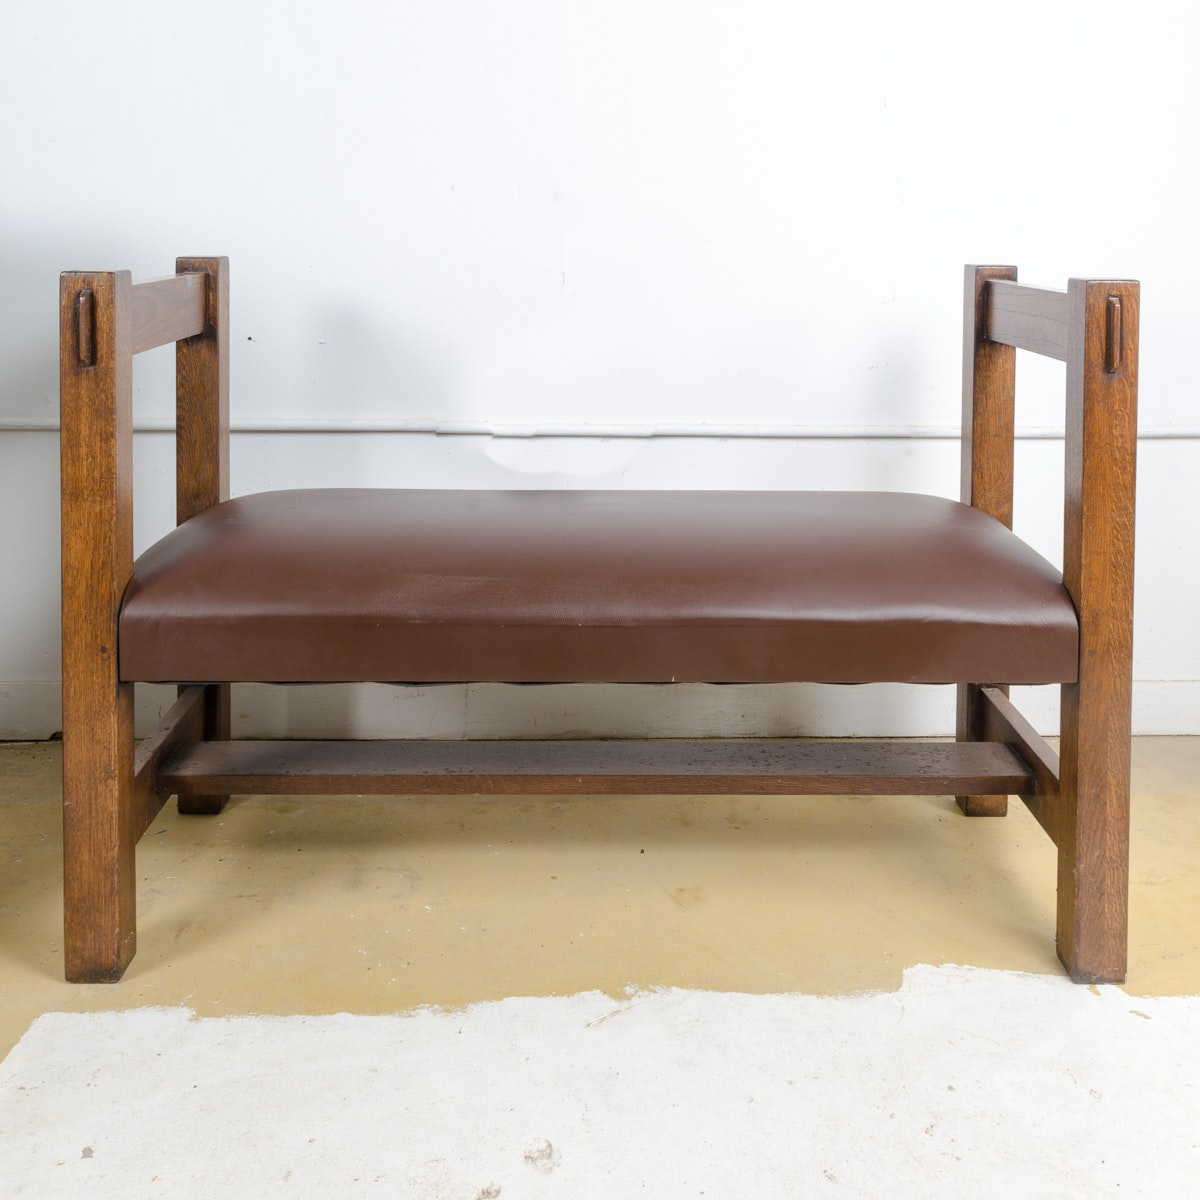 Mission Style Oak Bench with Leather Seat